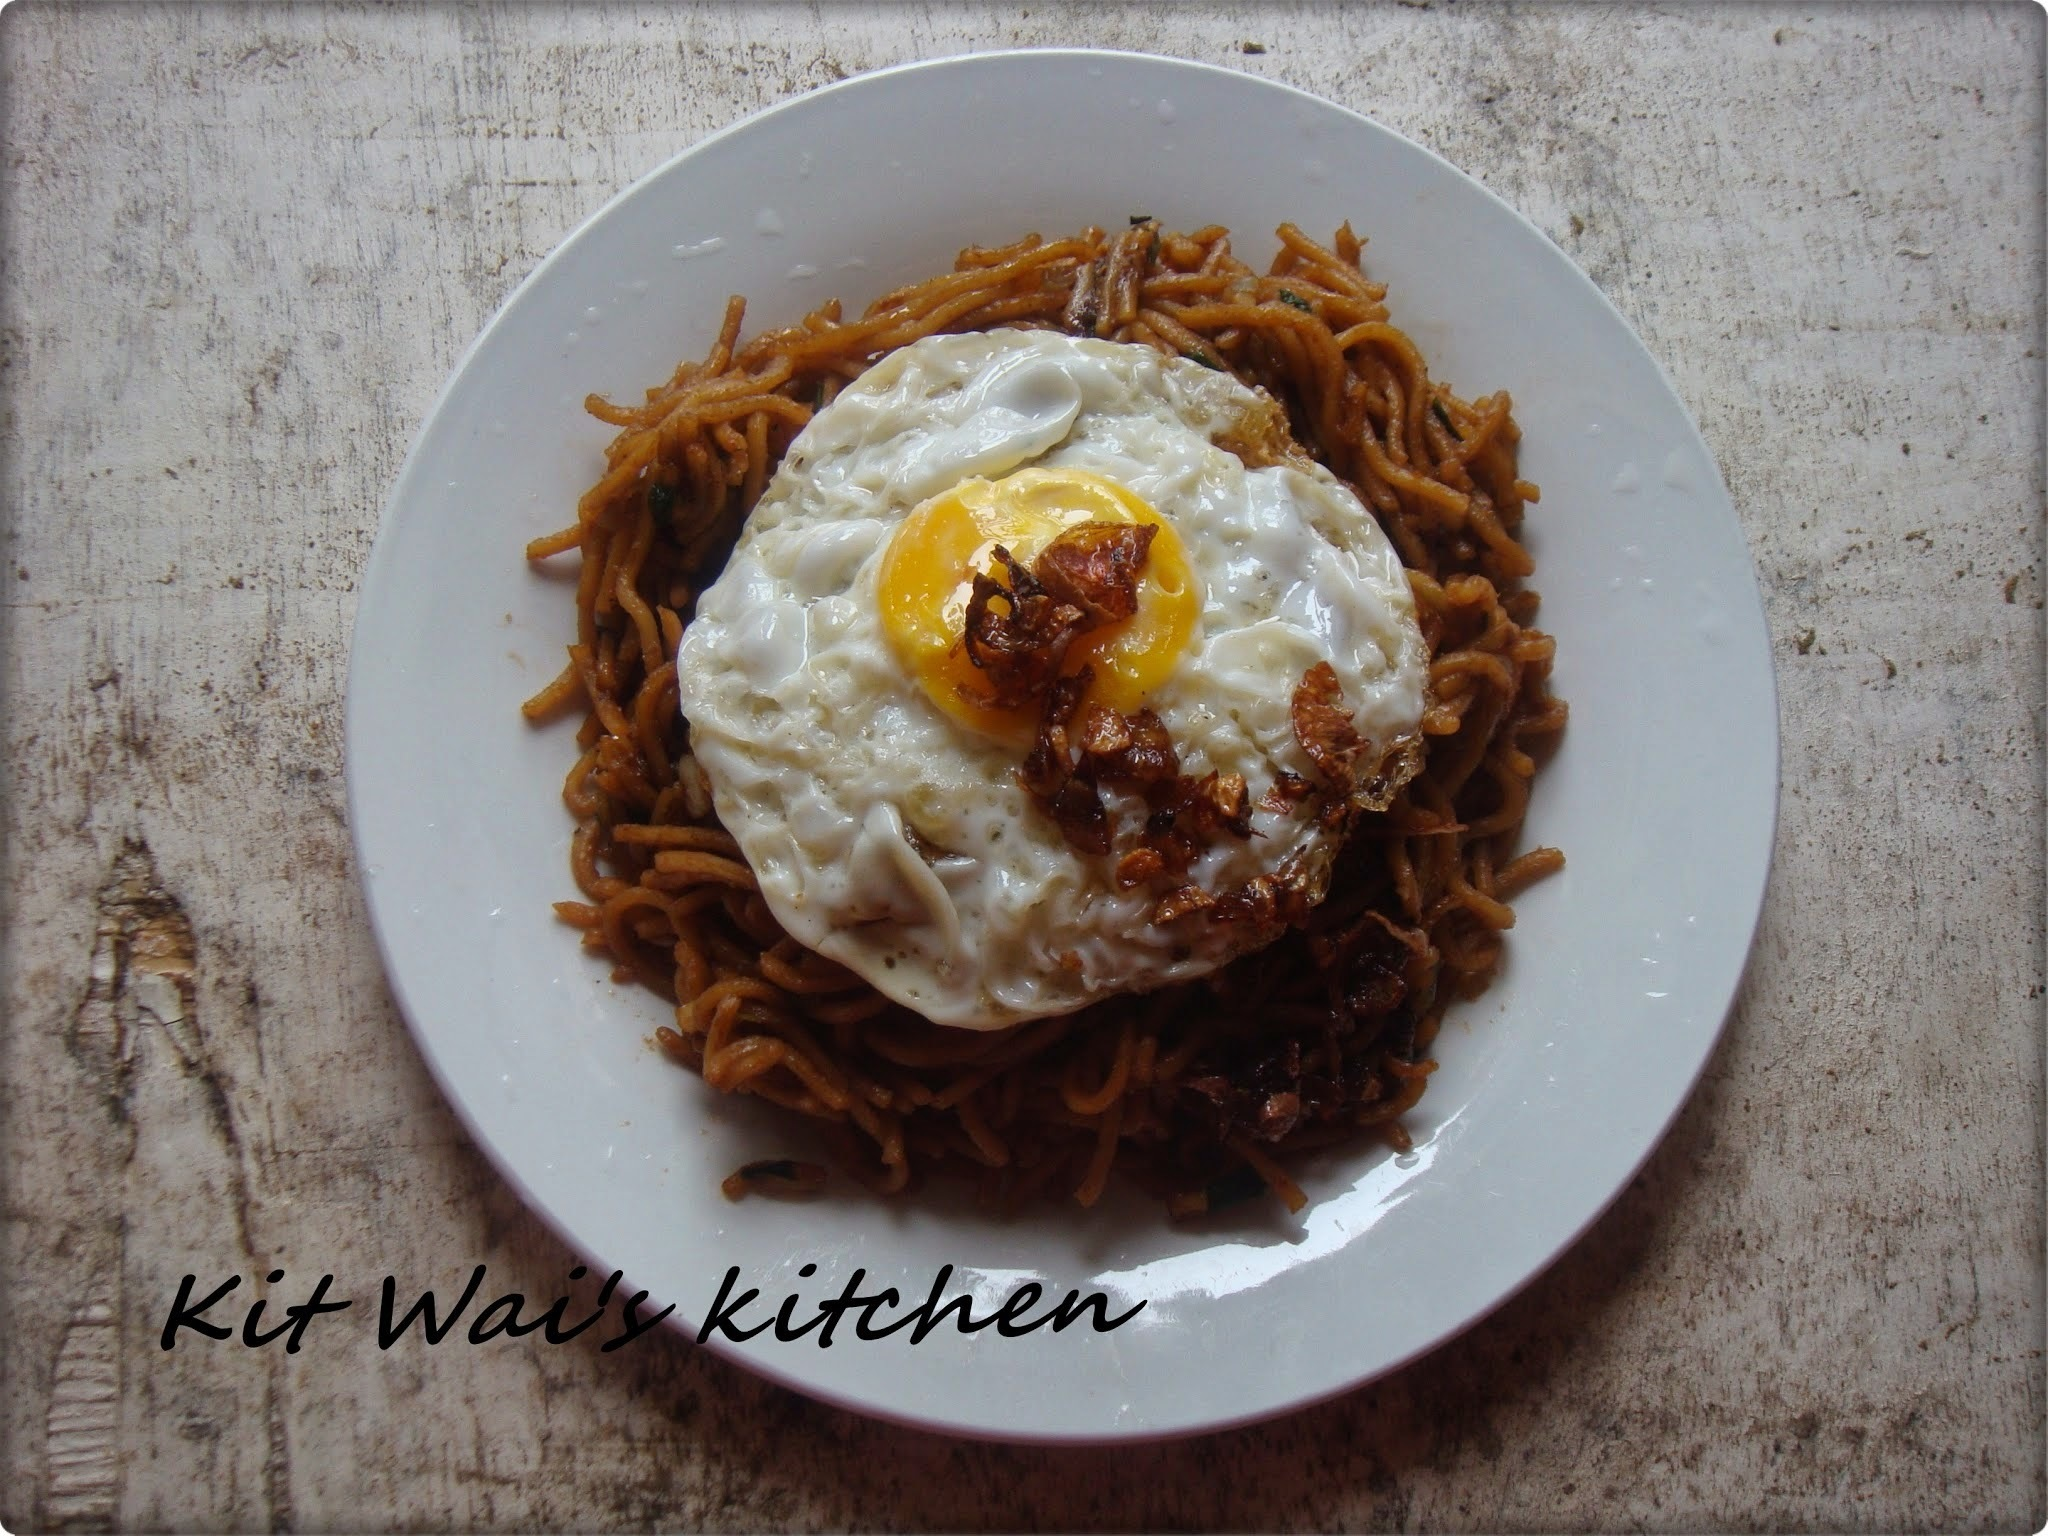 印尼炒面 ~ Bakmie Goreng / Indonesian Stir-fried noodles